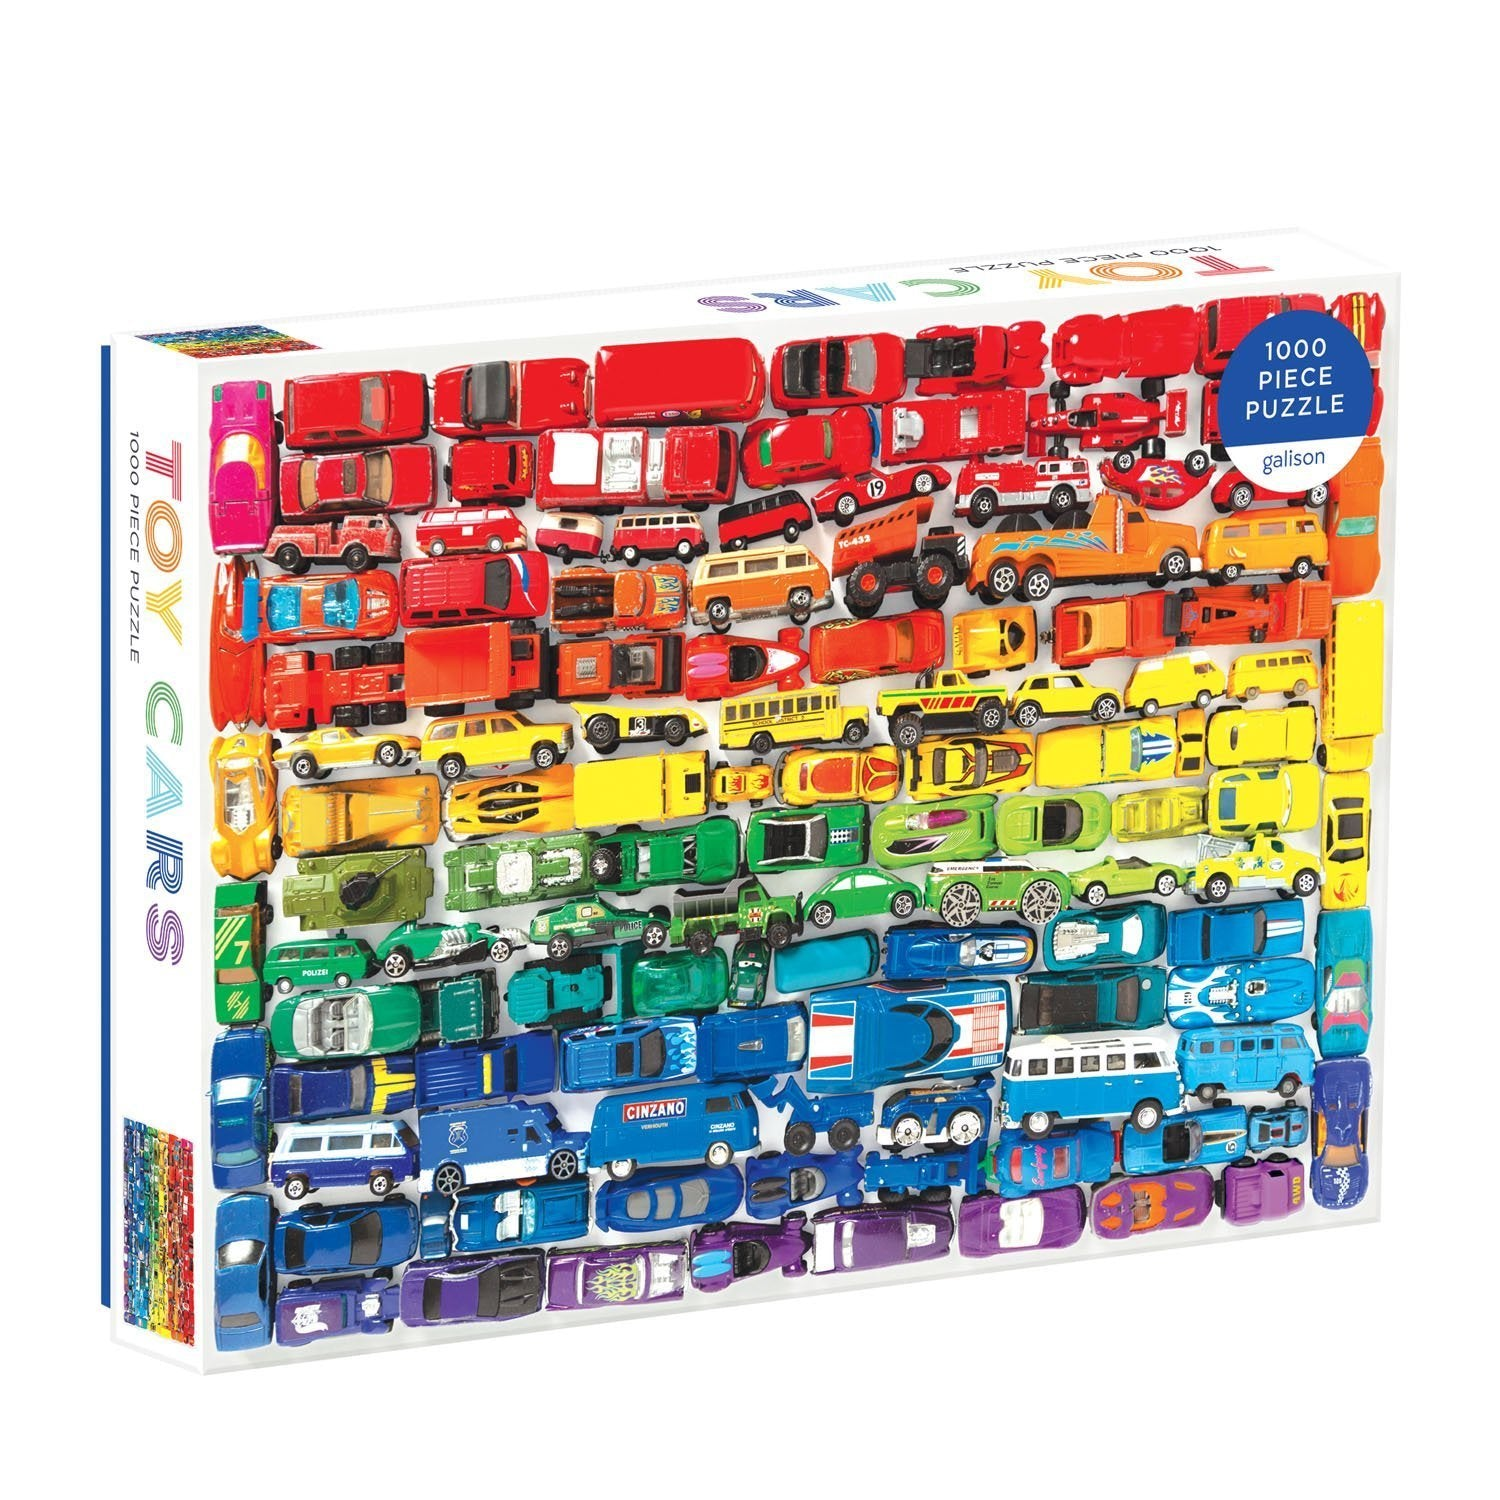 1000 Piece Puzzle Galison Toy Cars